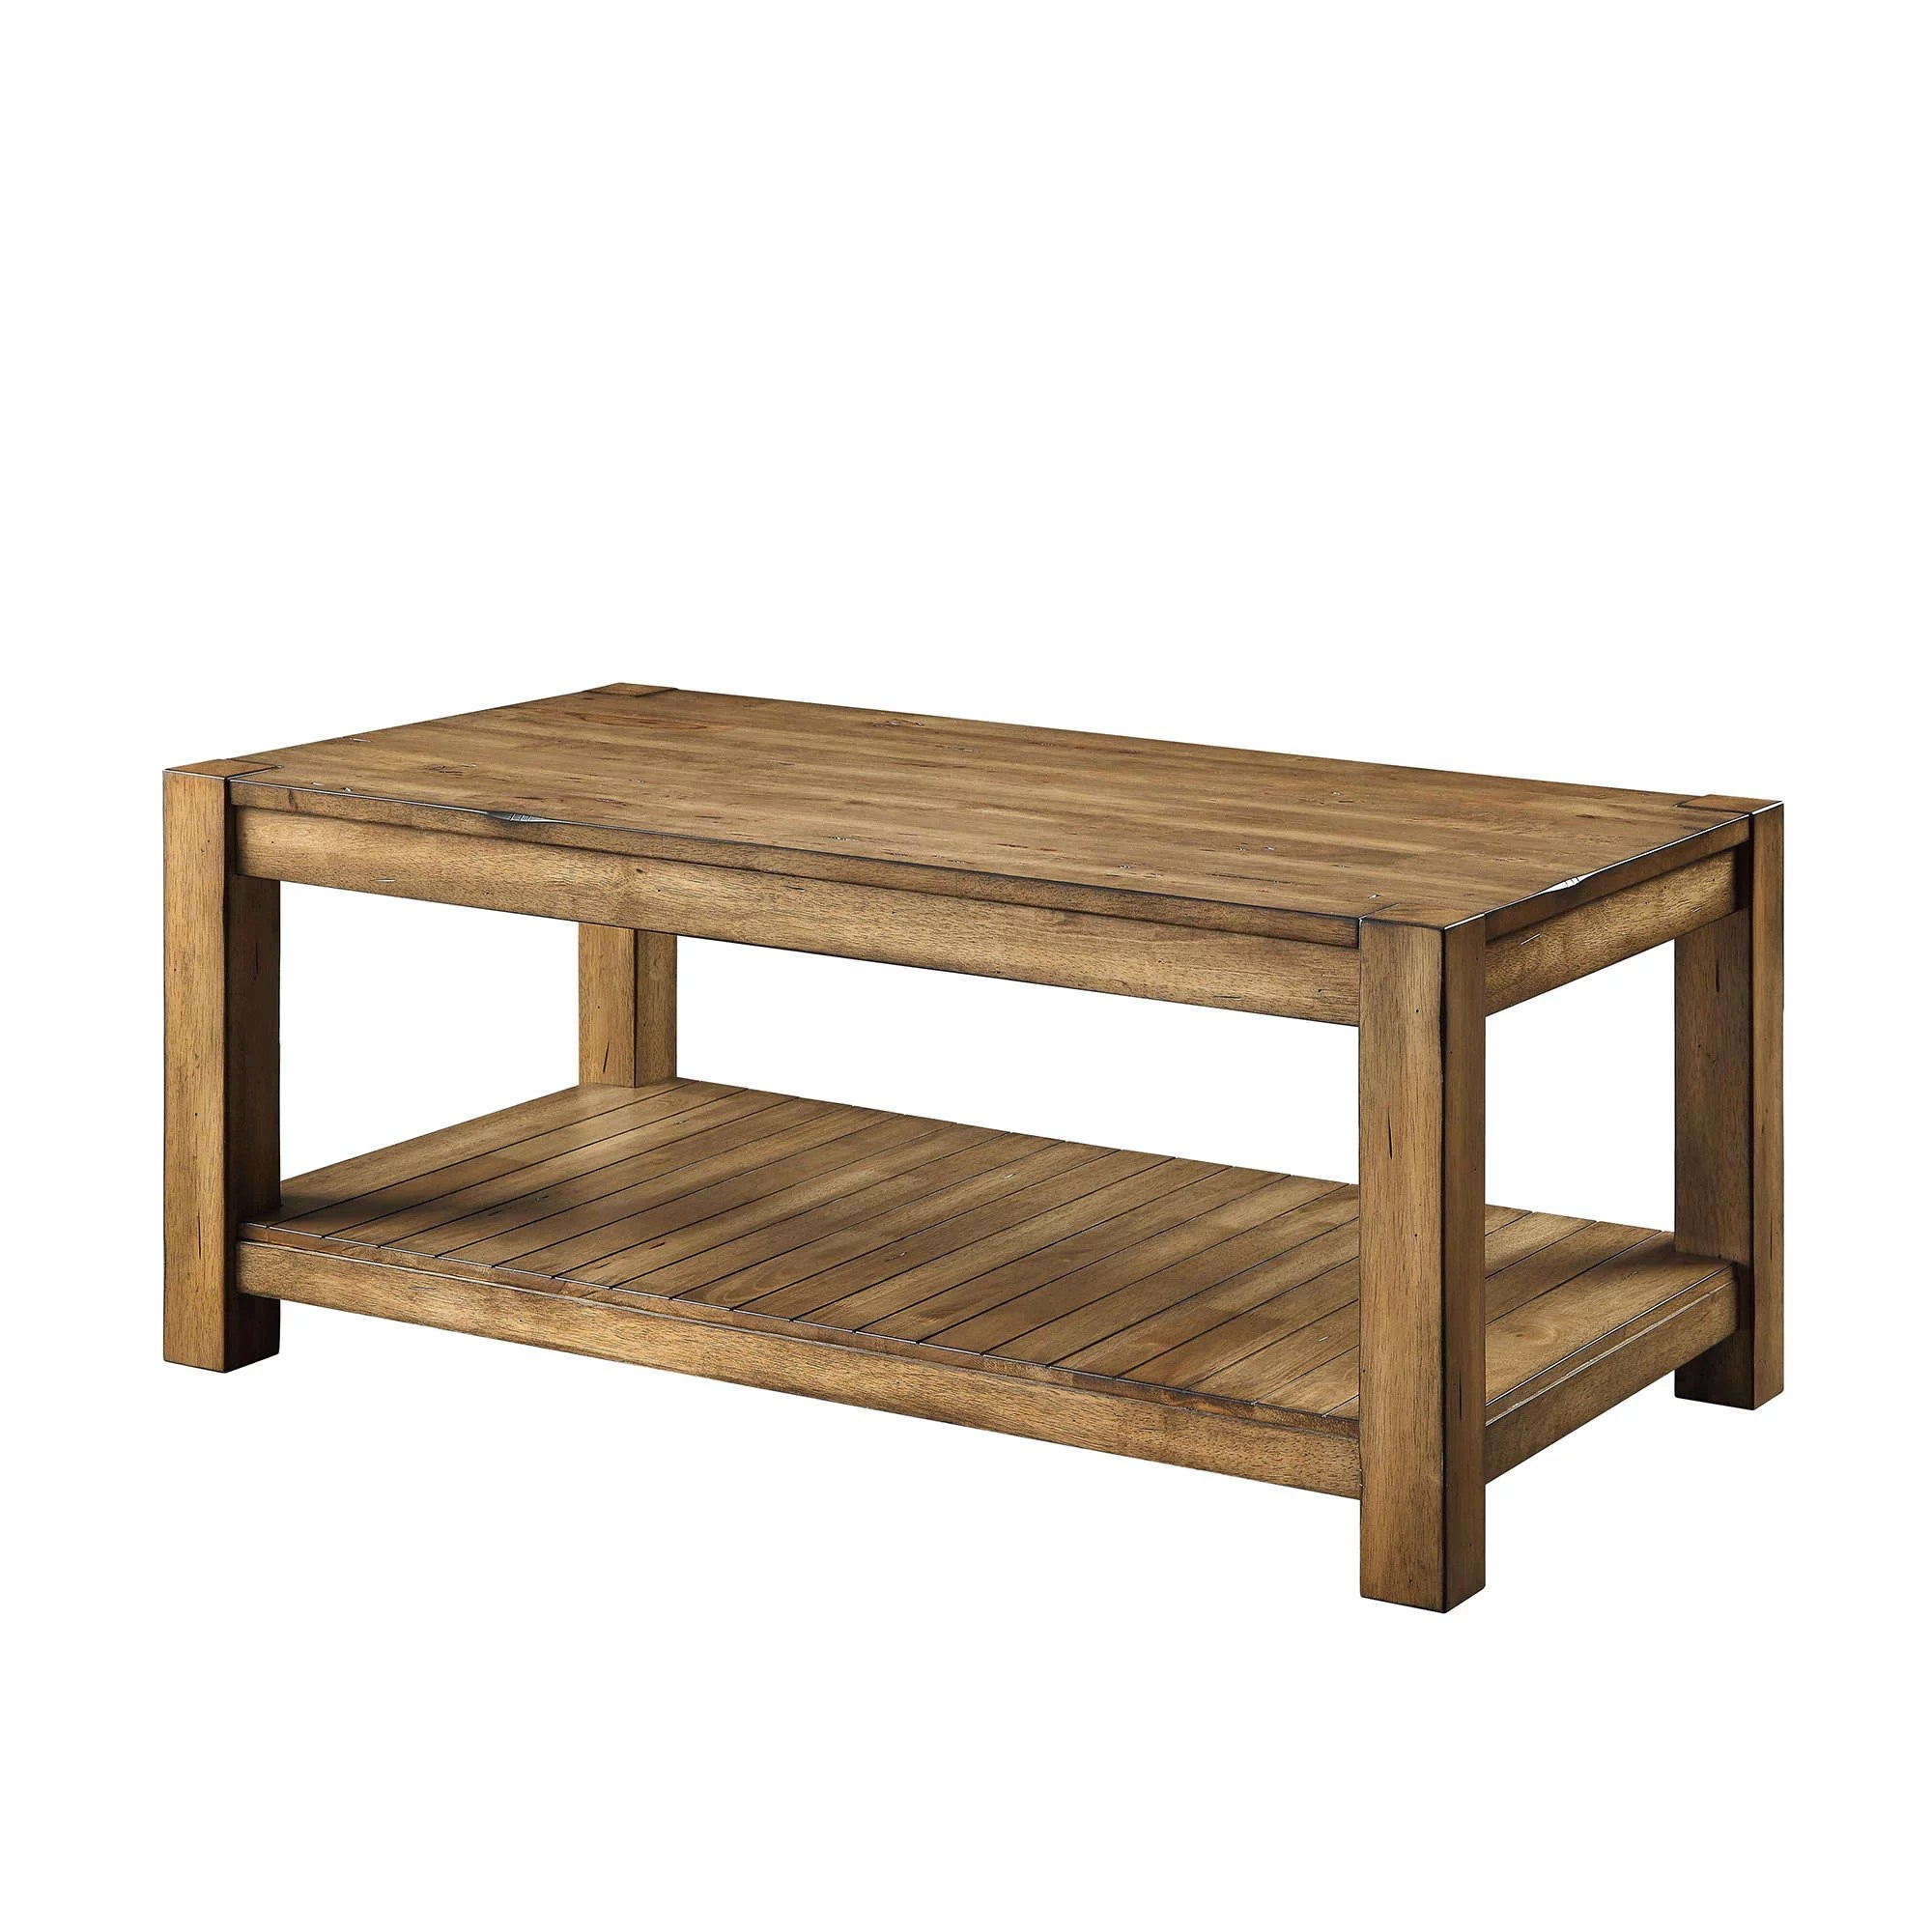 better homes gardens bryant solid wood coffee table rustic maple brown finish walmart com